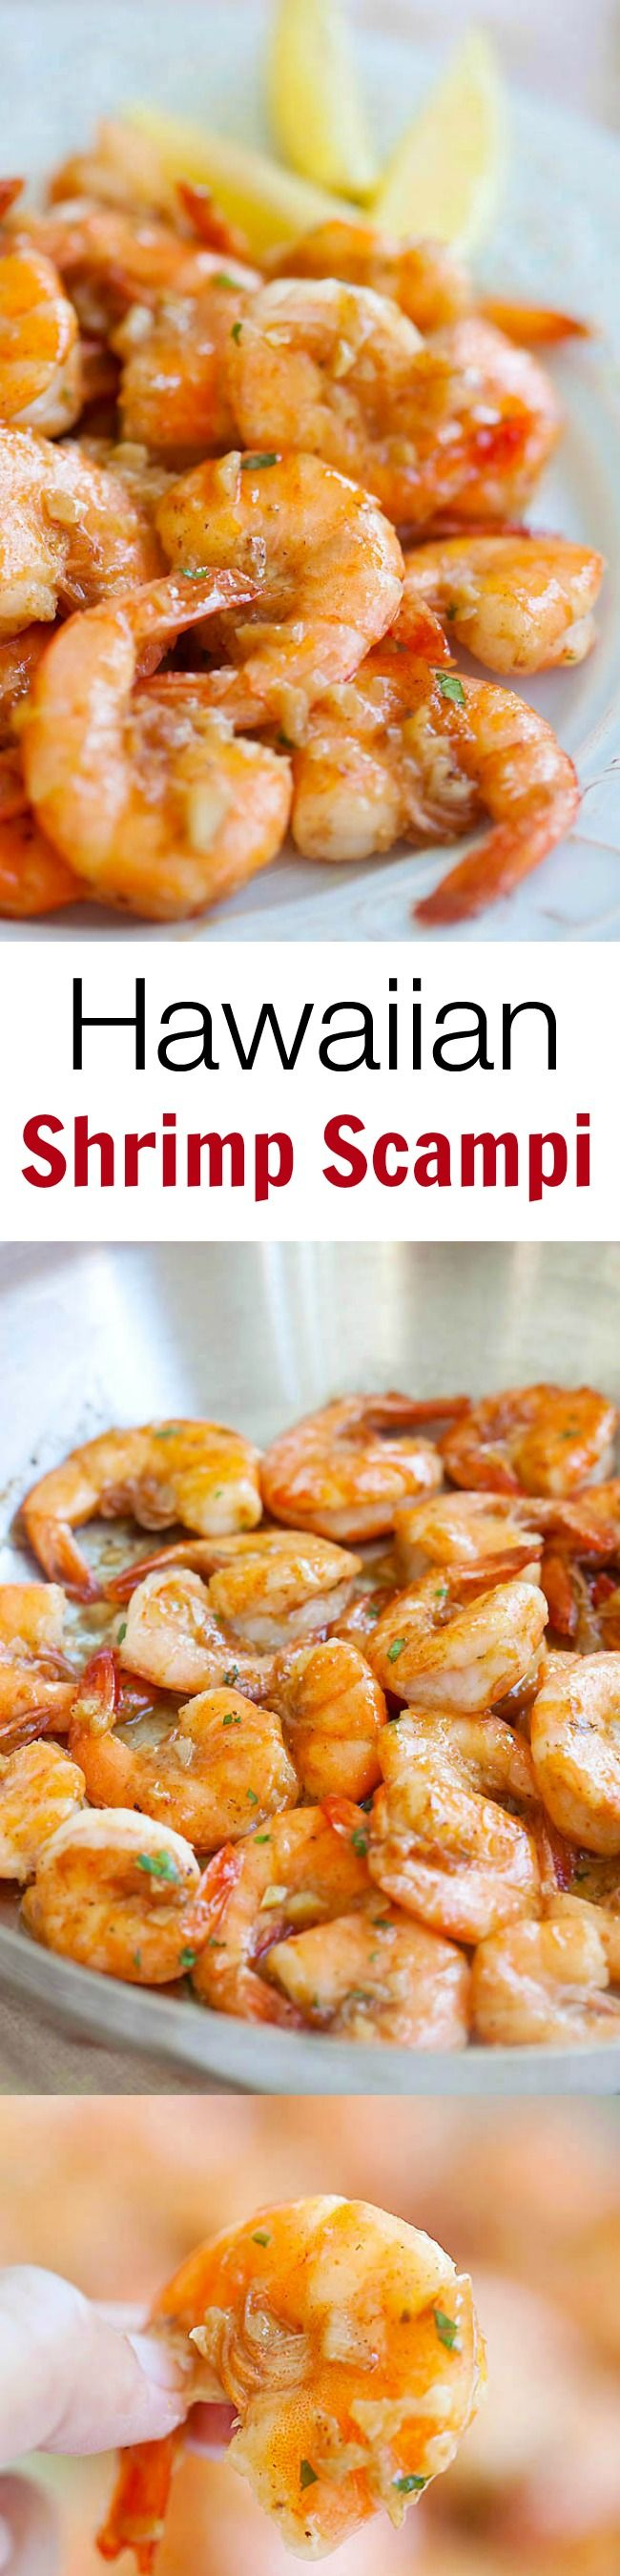 Hawaiian Shrimp Scampi #recipe... super buttery and garlicky, copycat of Giovanni's shrimp truck.  Bring Hawaii home with this super easy recipe | rasamalaysia.com